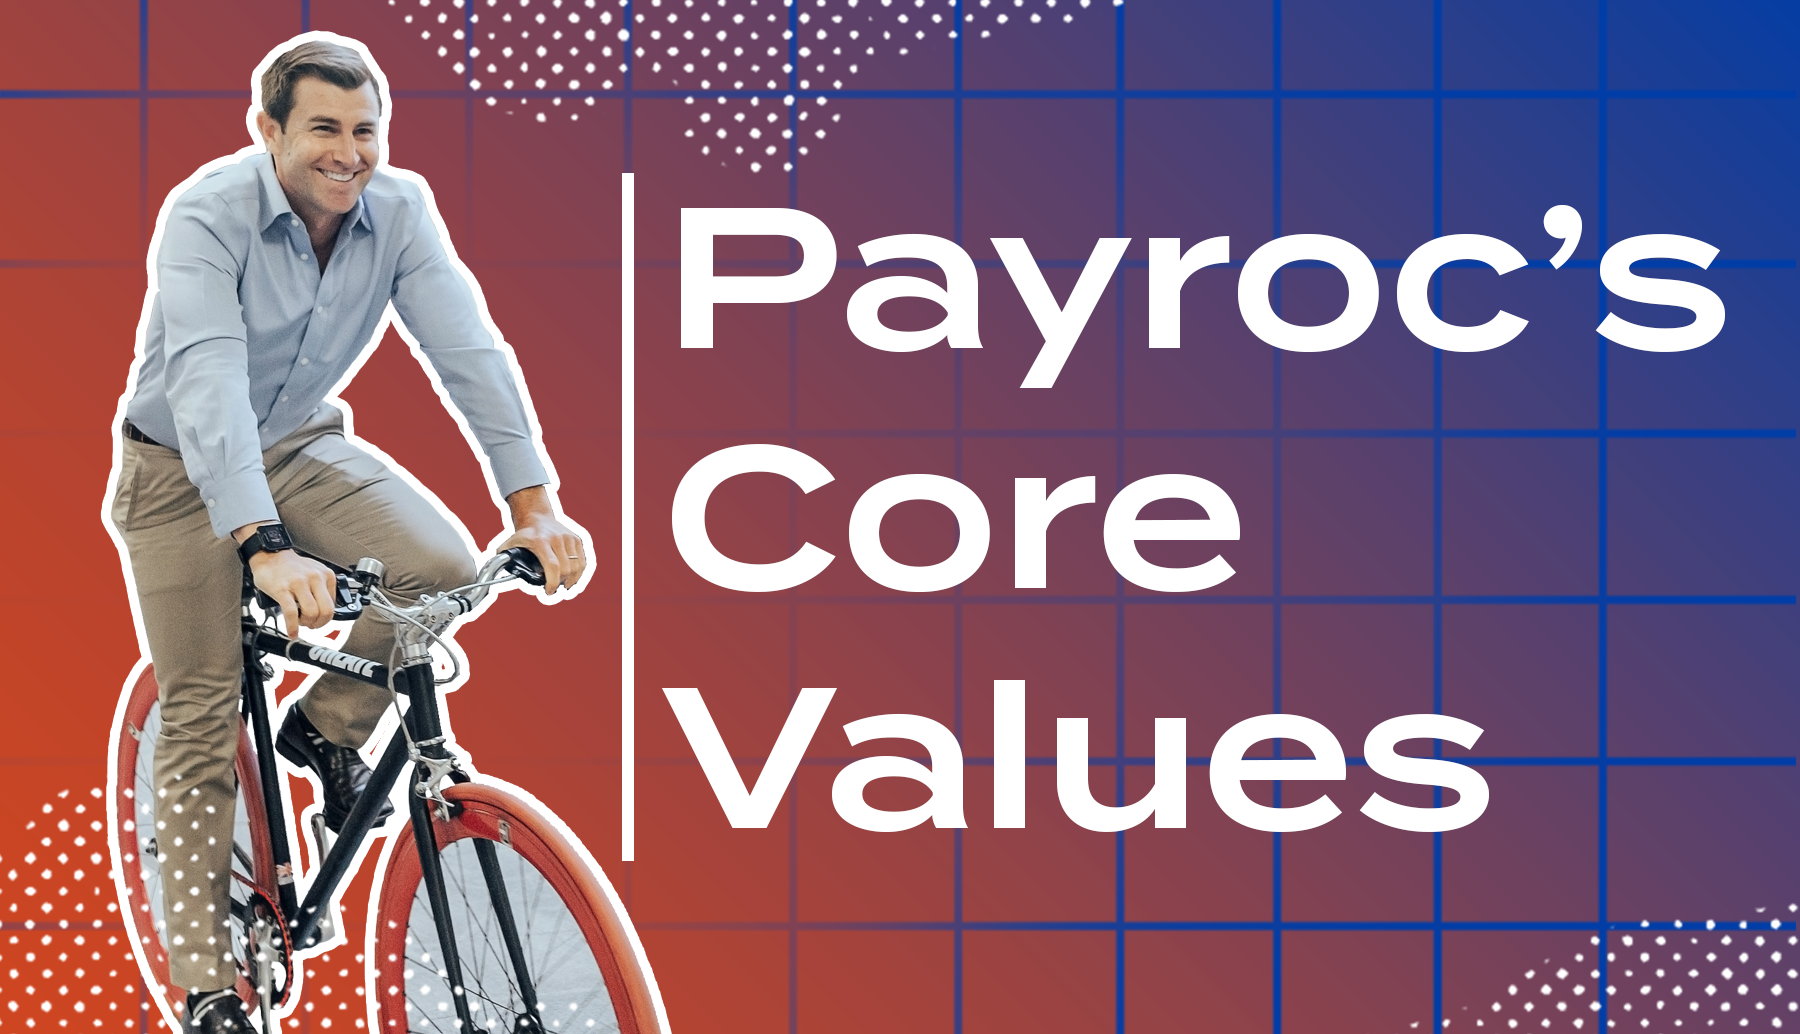 payroc core values